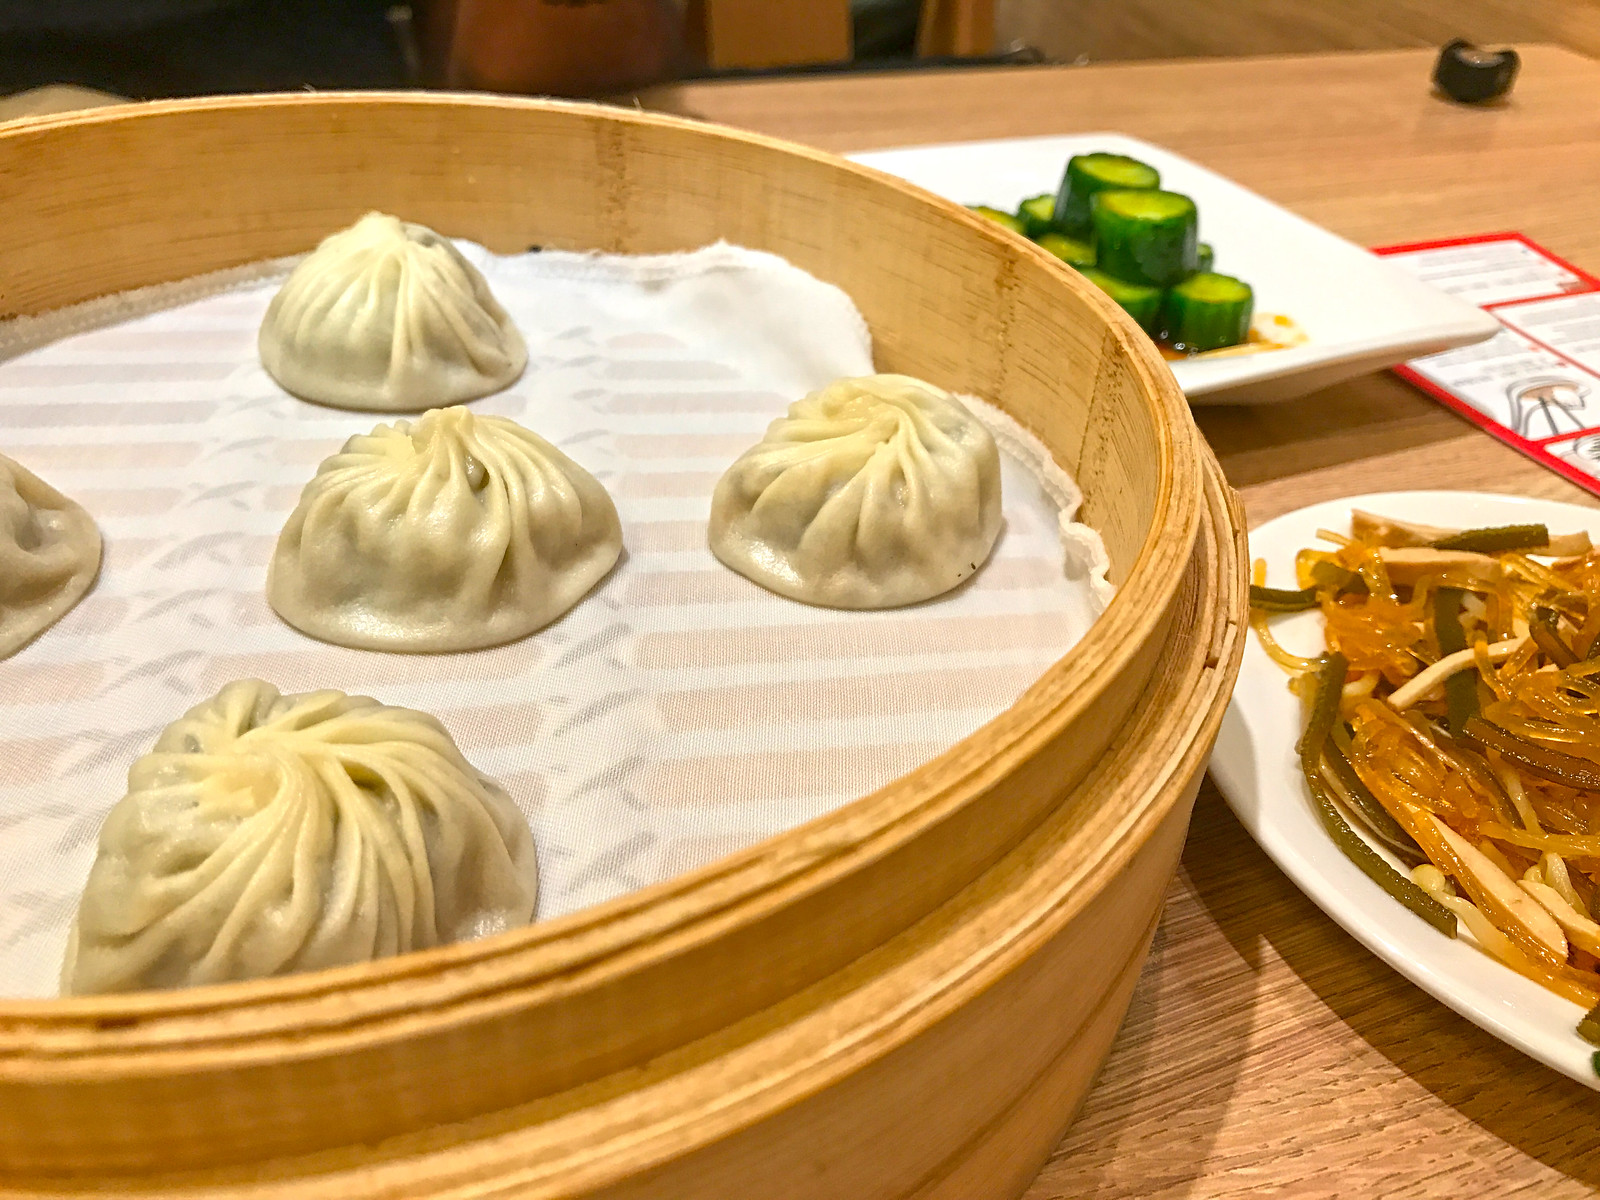 Truffle and meat xiaolongbao